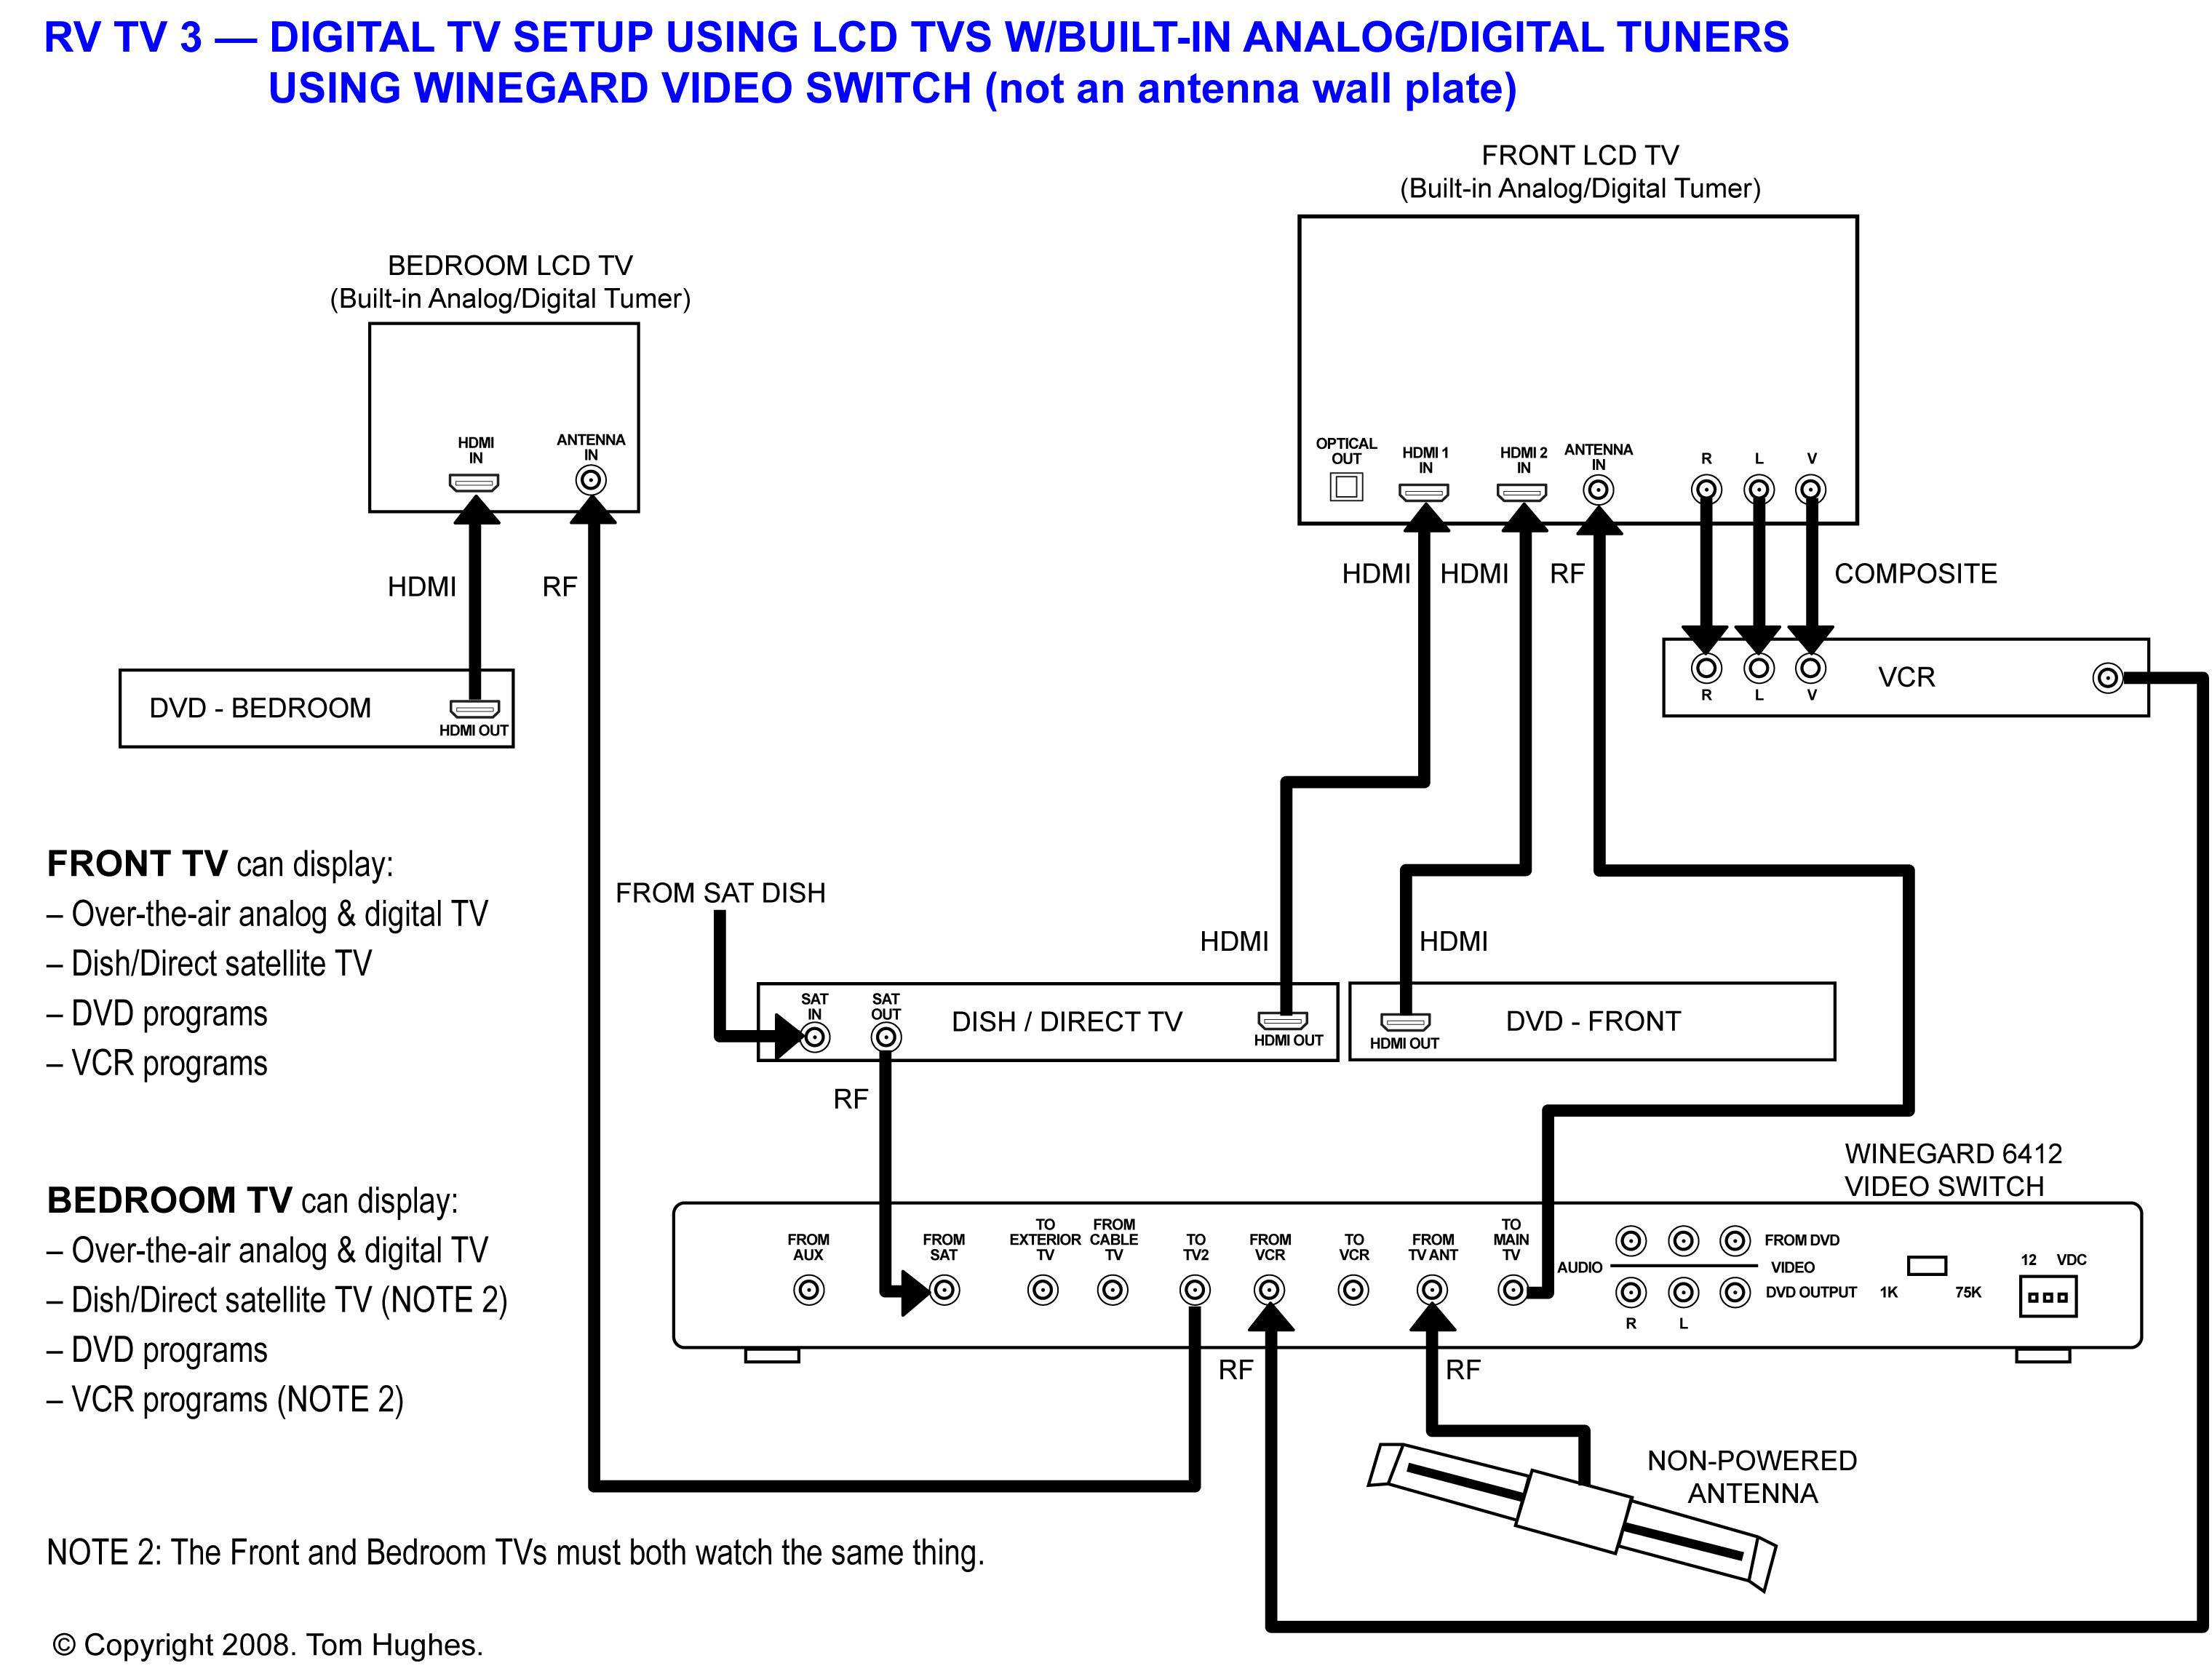 How To Connect 2 Tvs To One Dish Network Receiver Wiring Diagram from rvseniormoments.files.wordpress.com